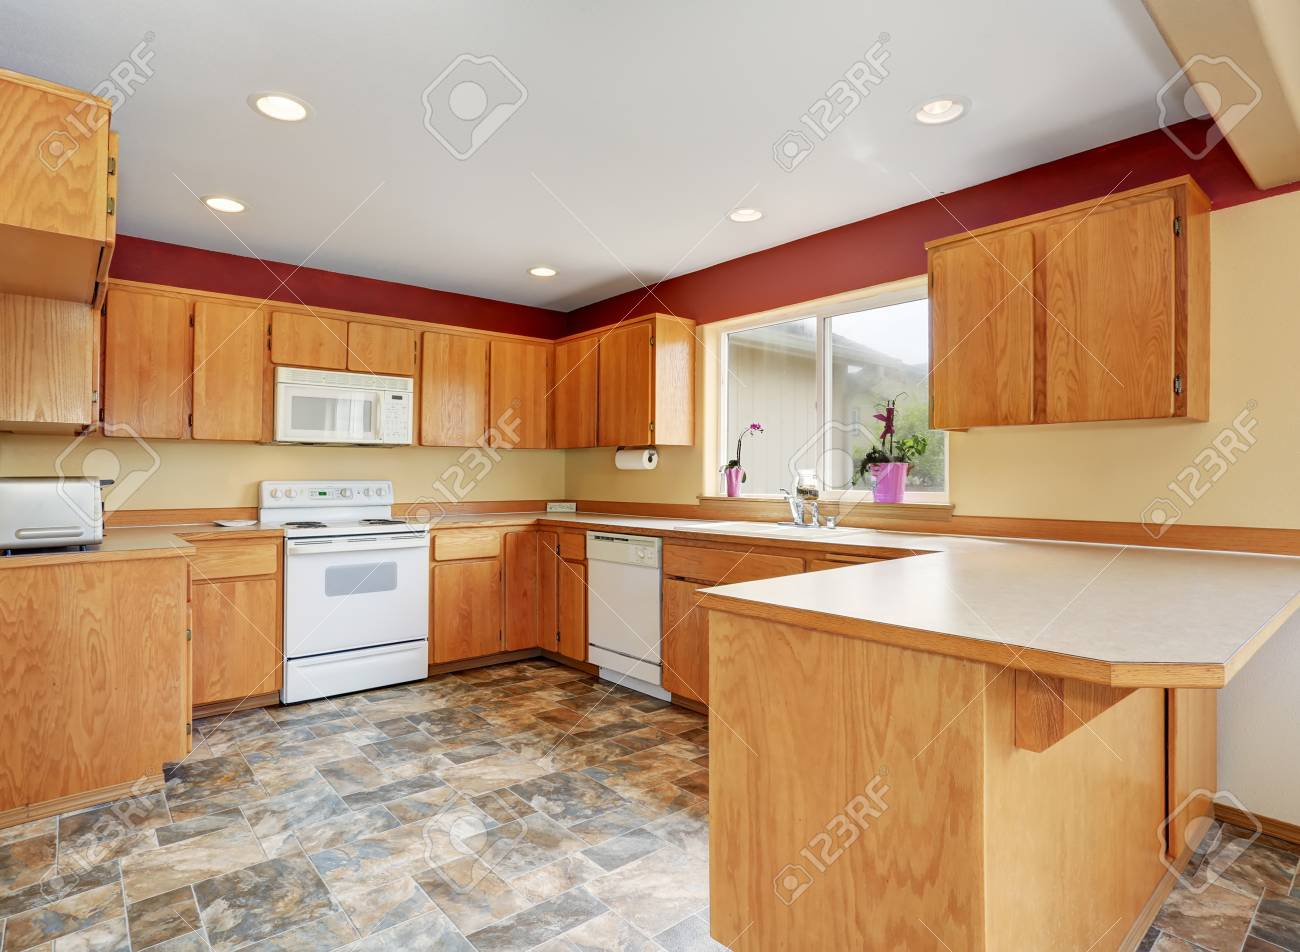 Classic Kitchen Room Interior With Tile Floor And Wooden Cabinets. Northwest,  USA Stock Photo